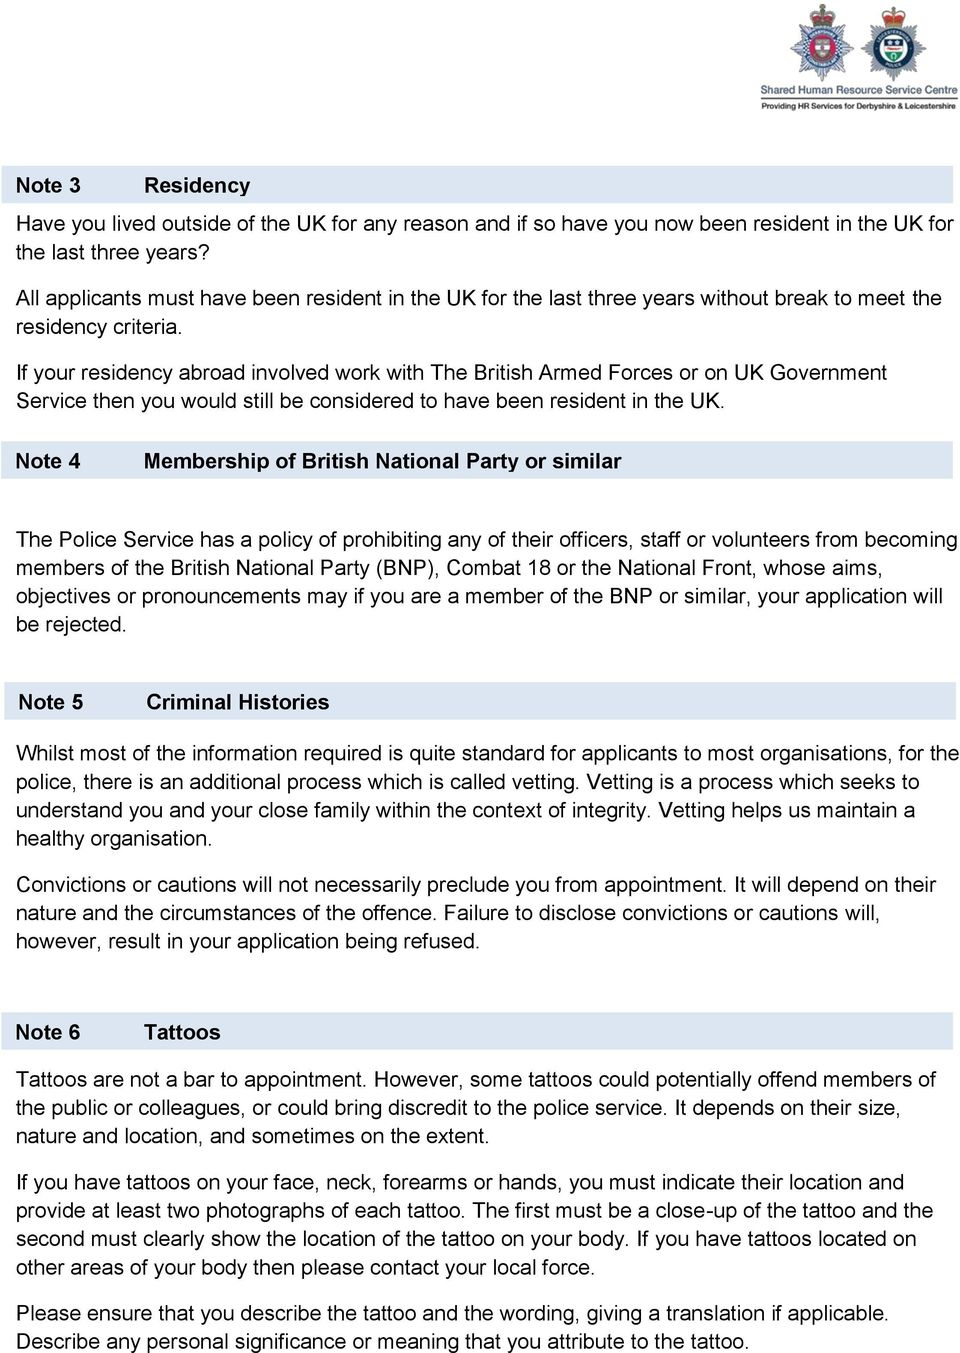 If your residency abroad involved work with The British Armed Forces or on UK Government Service then you would still be considered to have been resident in the UK.